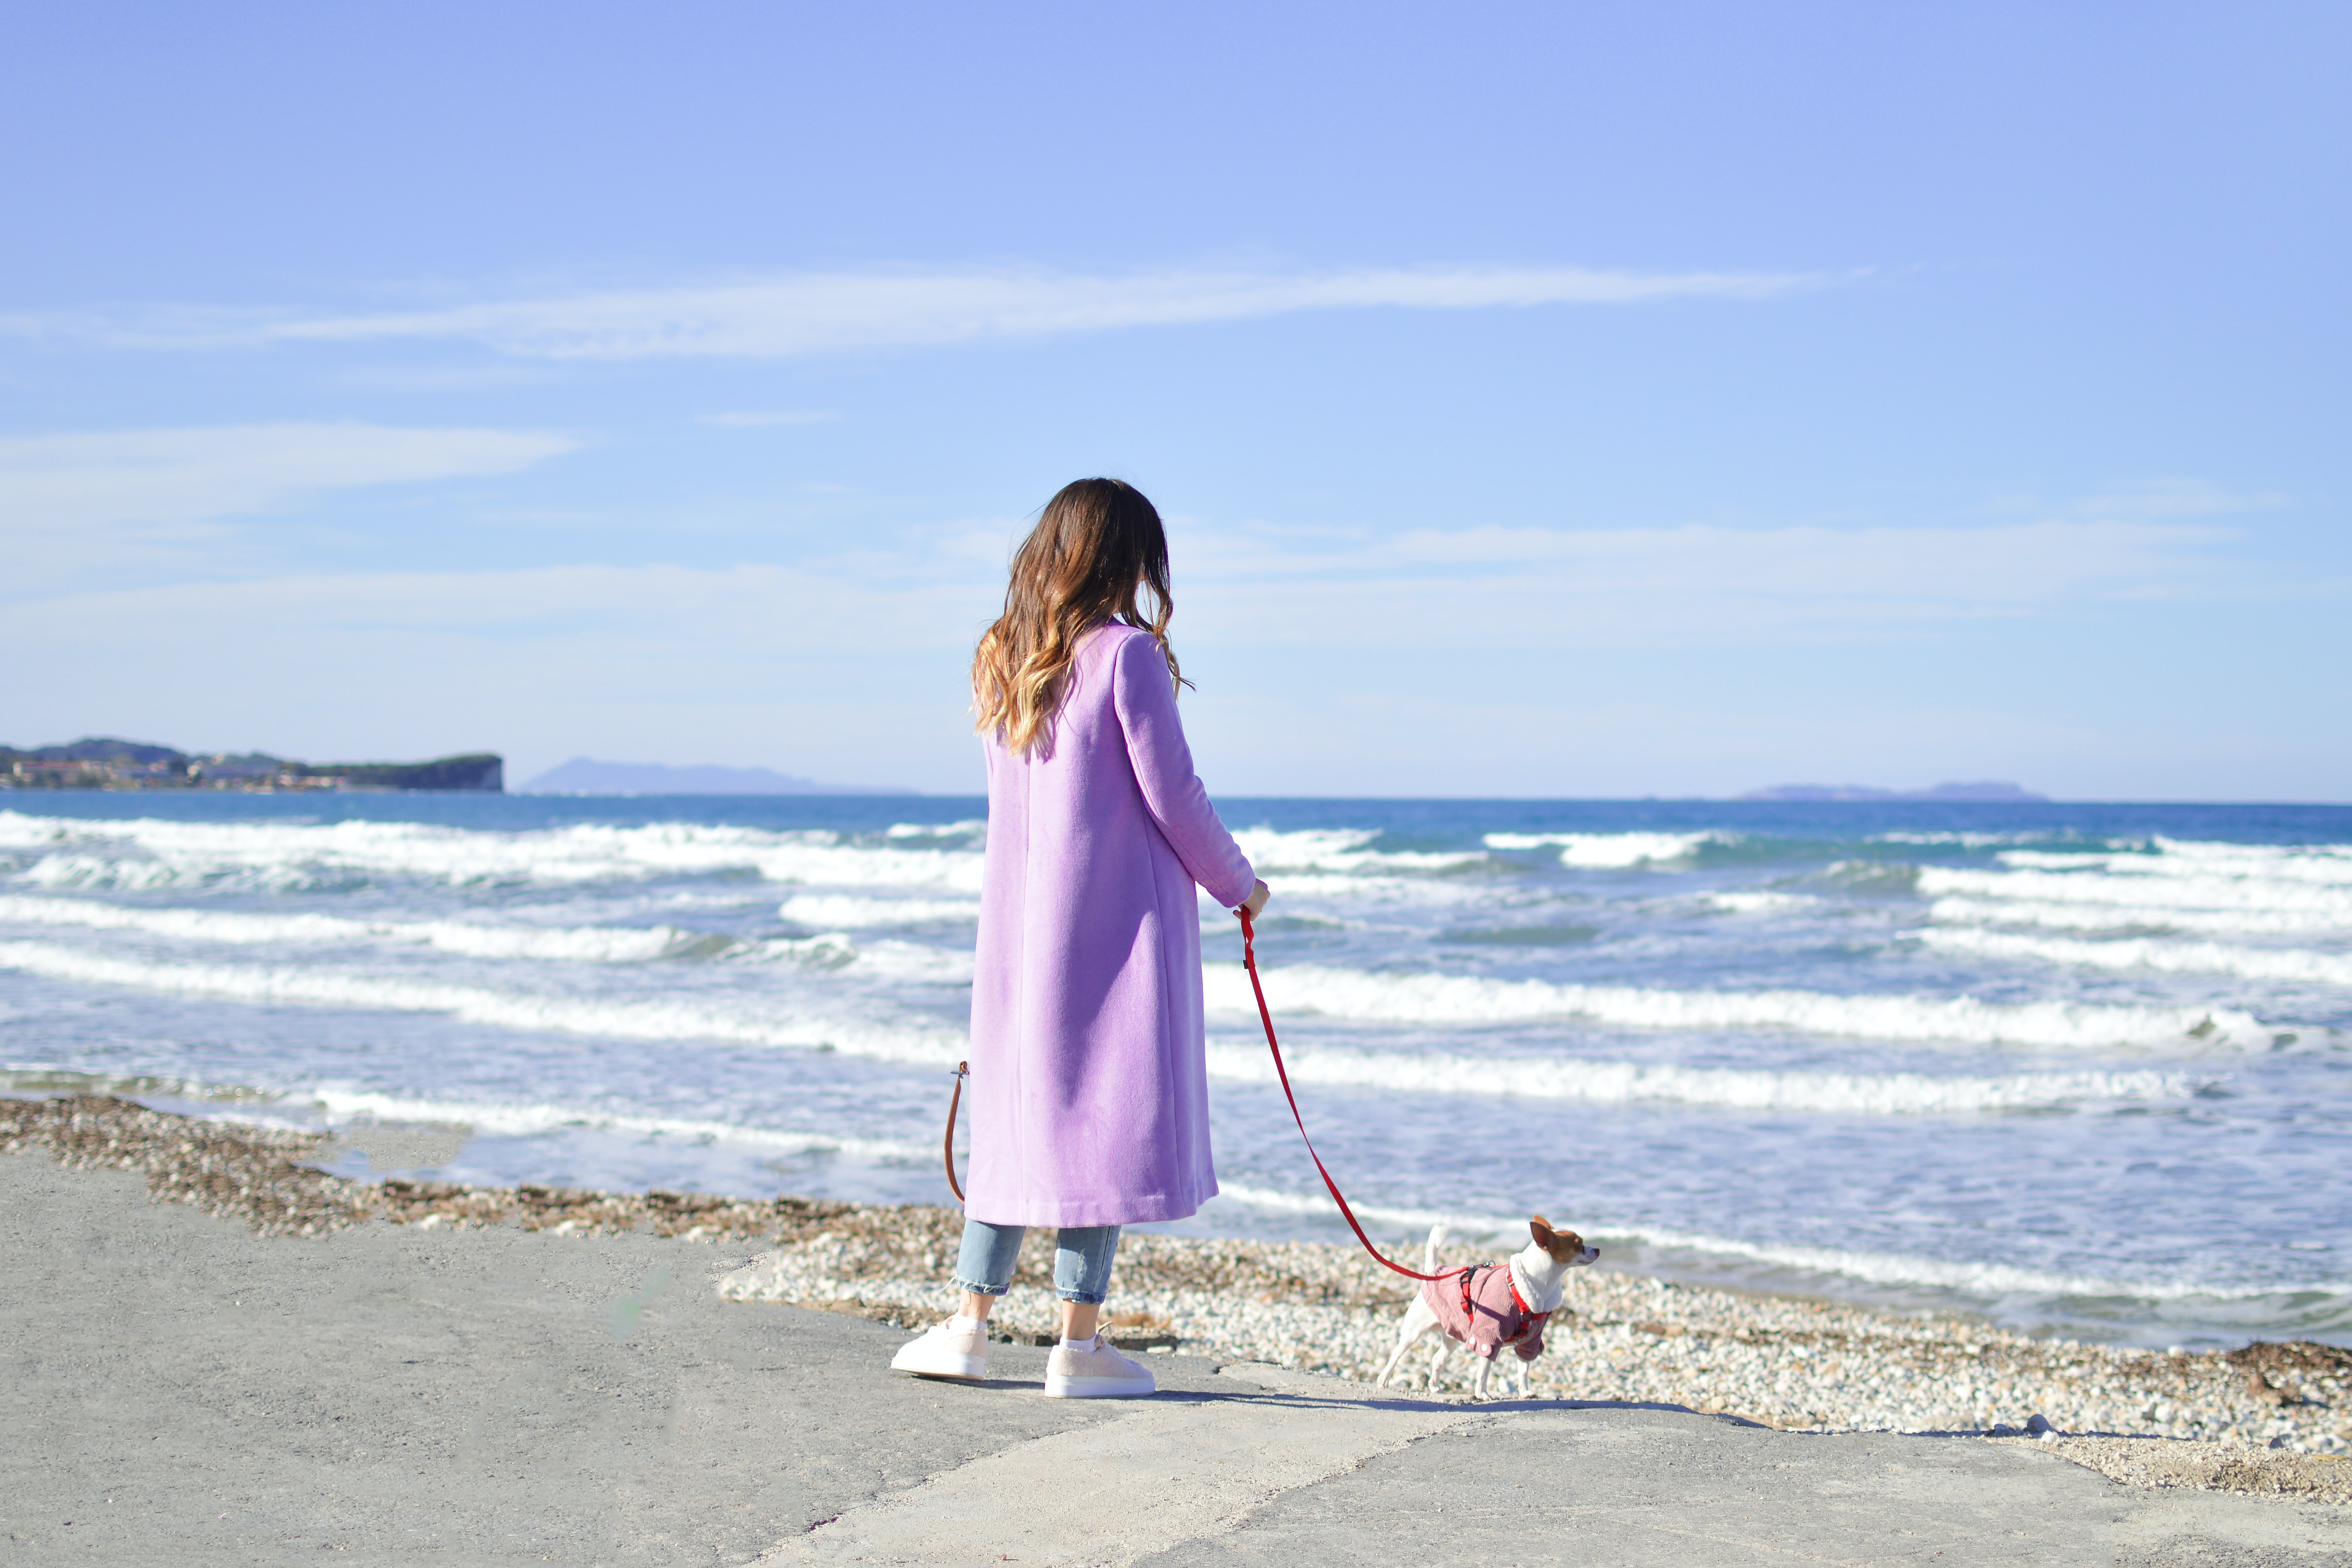 person in purple trench coat near body of water